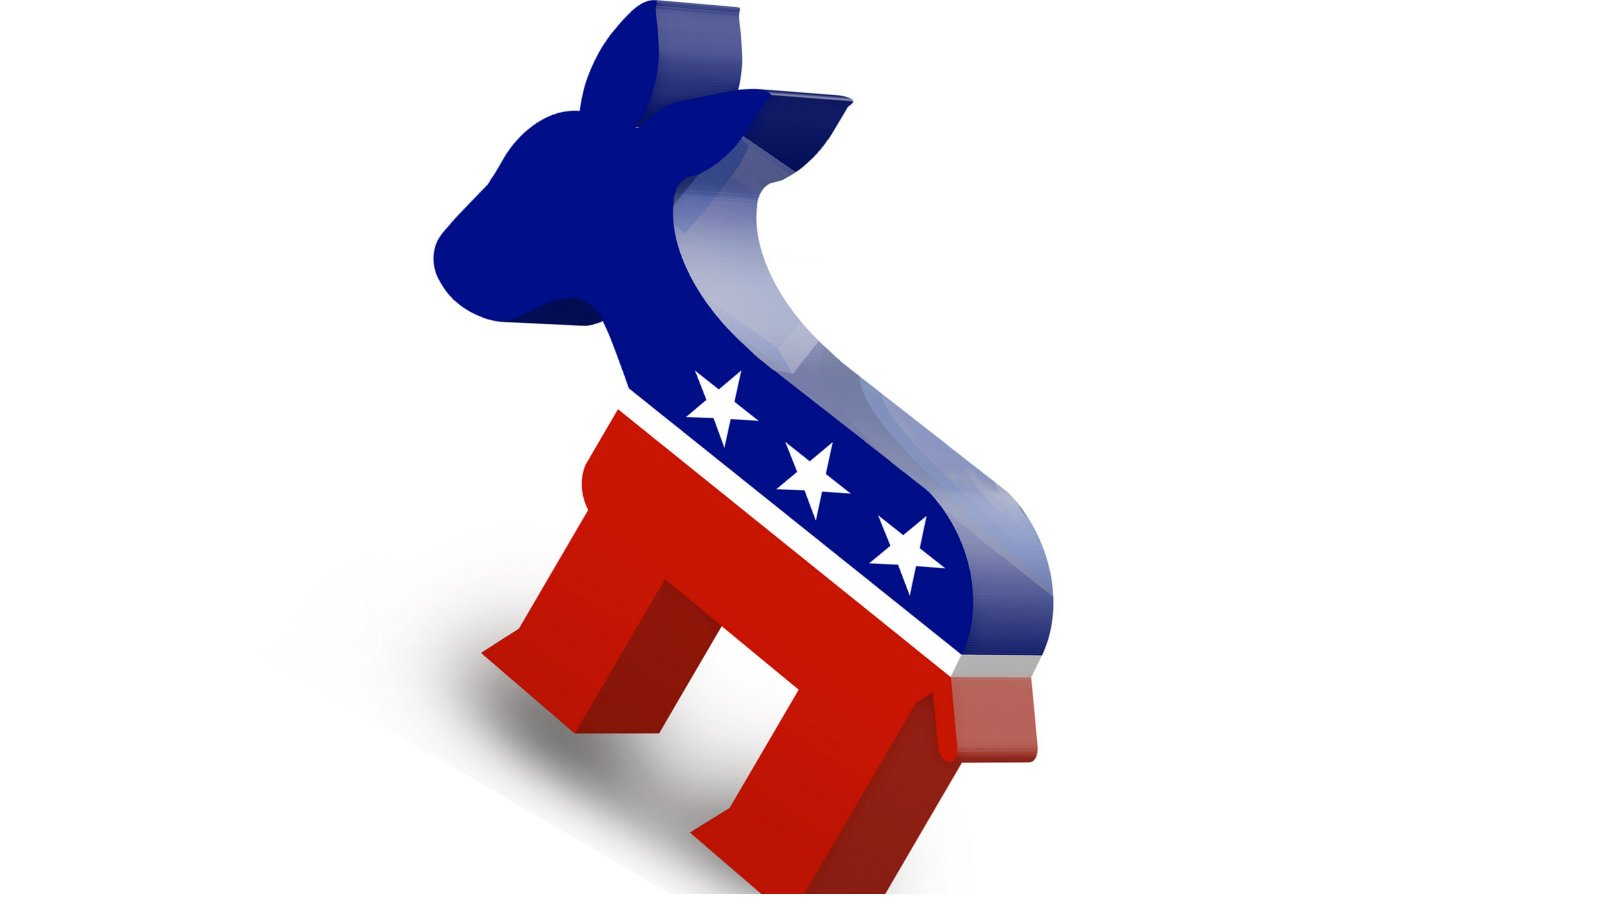 Clipart electoral commission progressive results picture royalty free Dems in Some States Face Steep Fees for Voter Data - Progressive.org picture royalty free